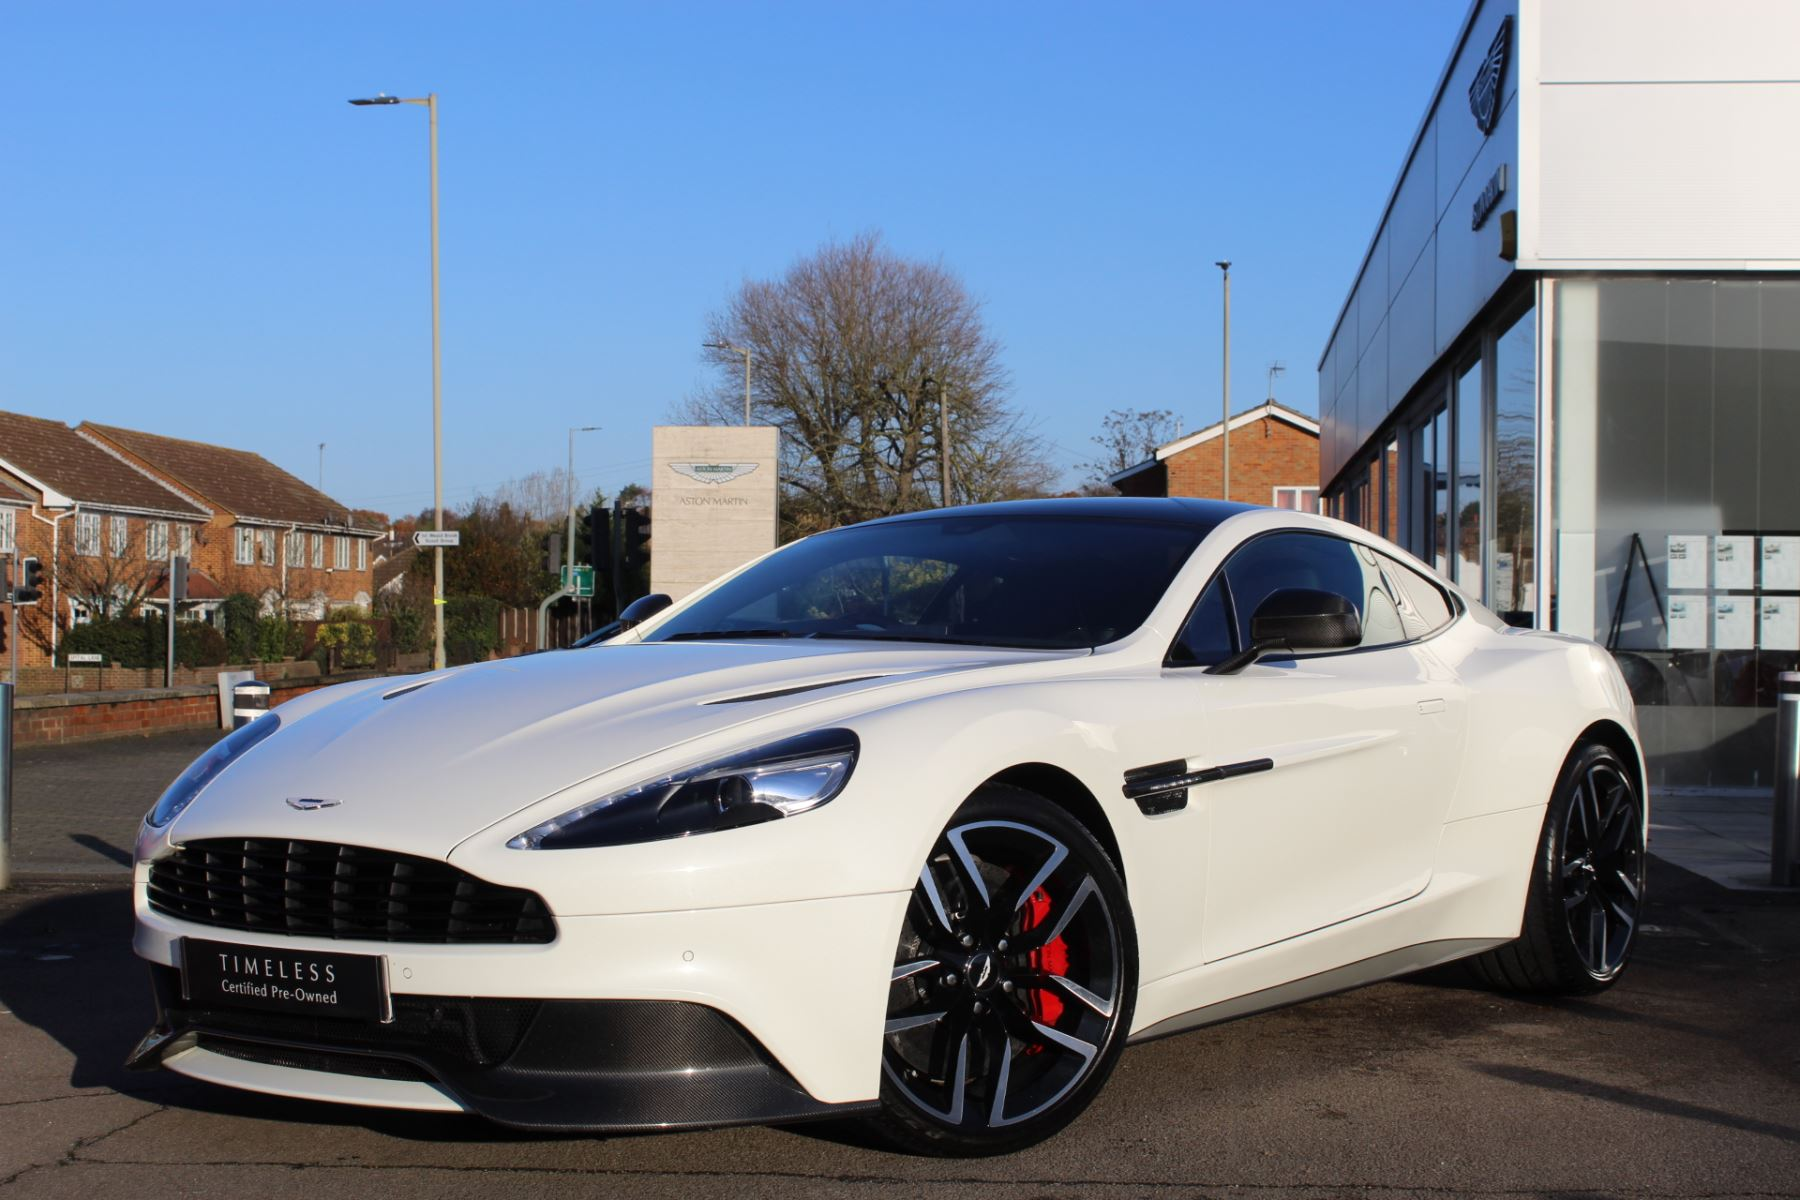 Aston Martin Vanquish Coupe  6.0 Automatic 2 door (2015) image